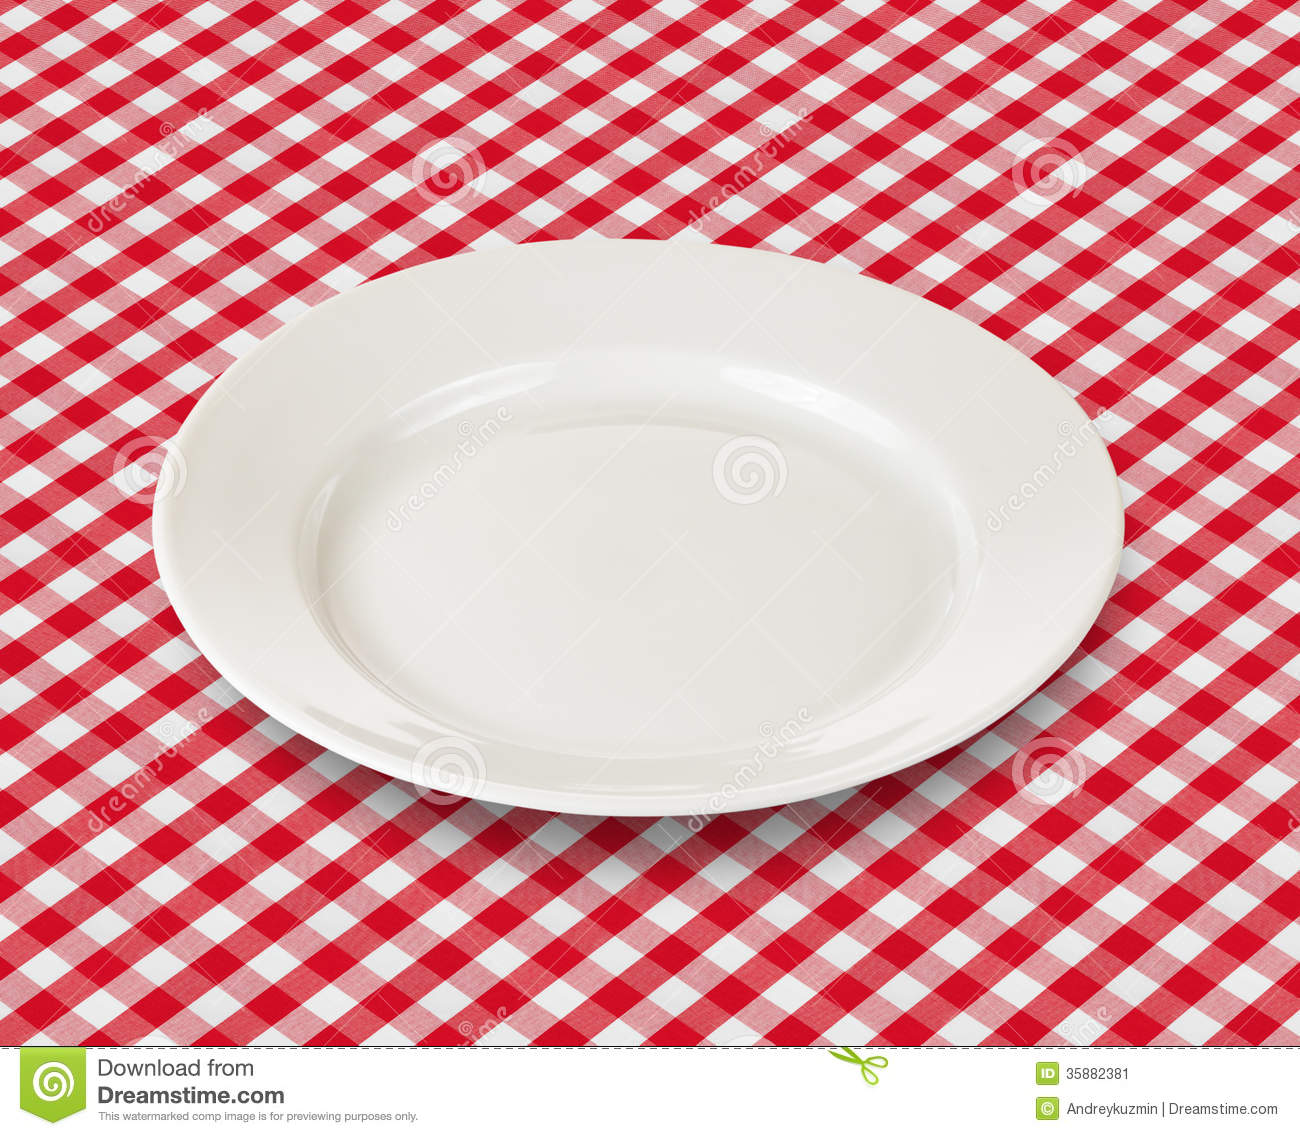 White Plate Over Red Picnic Tablecloth Stock Image - Image ...